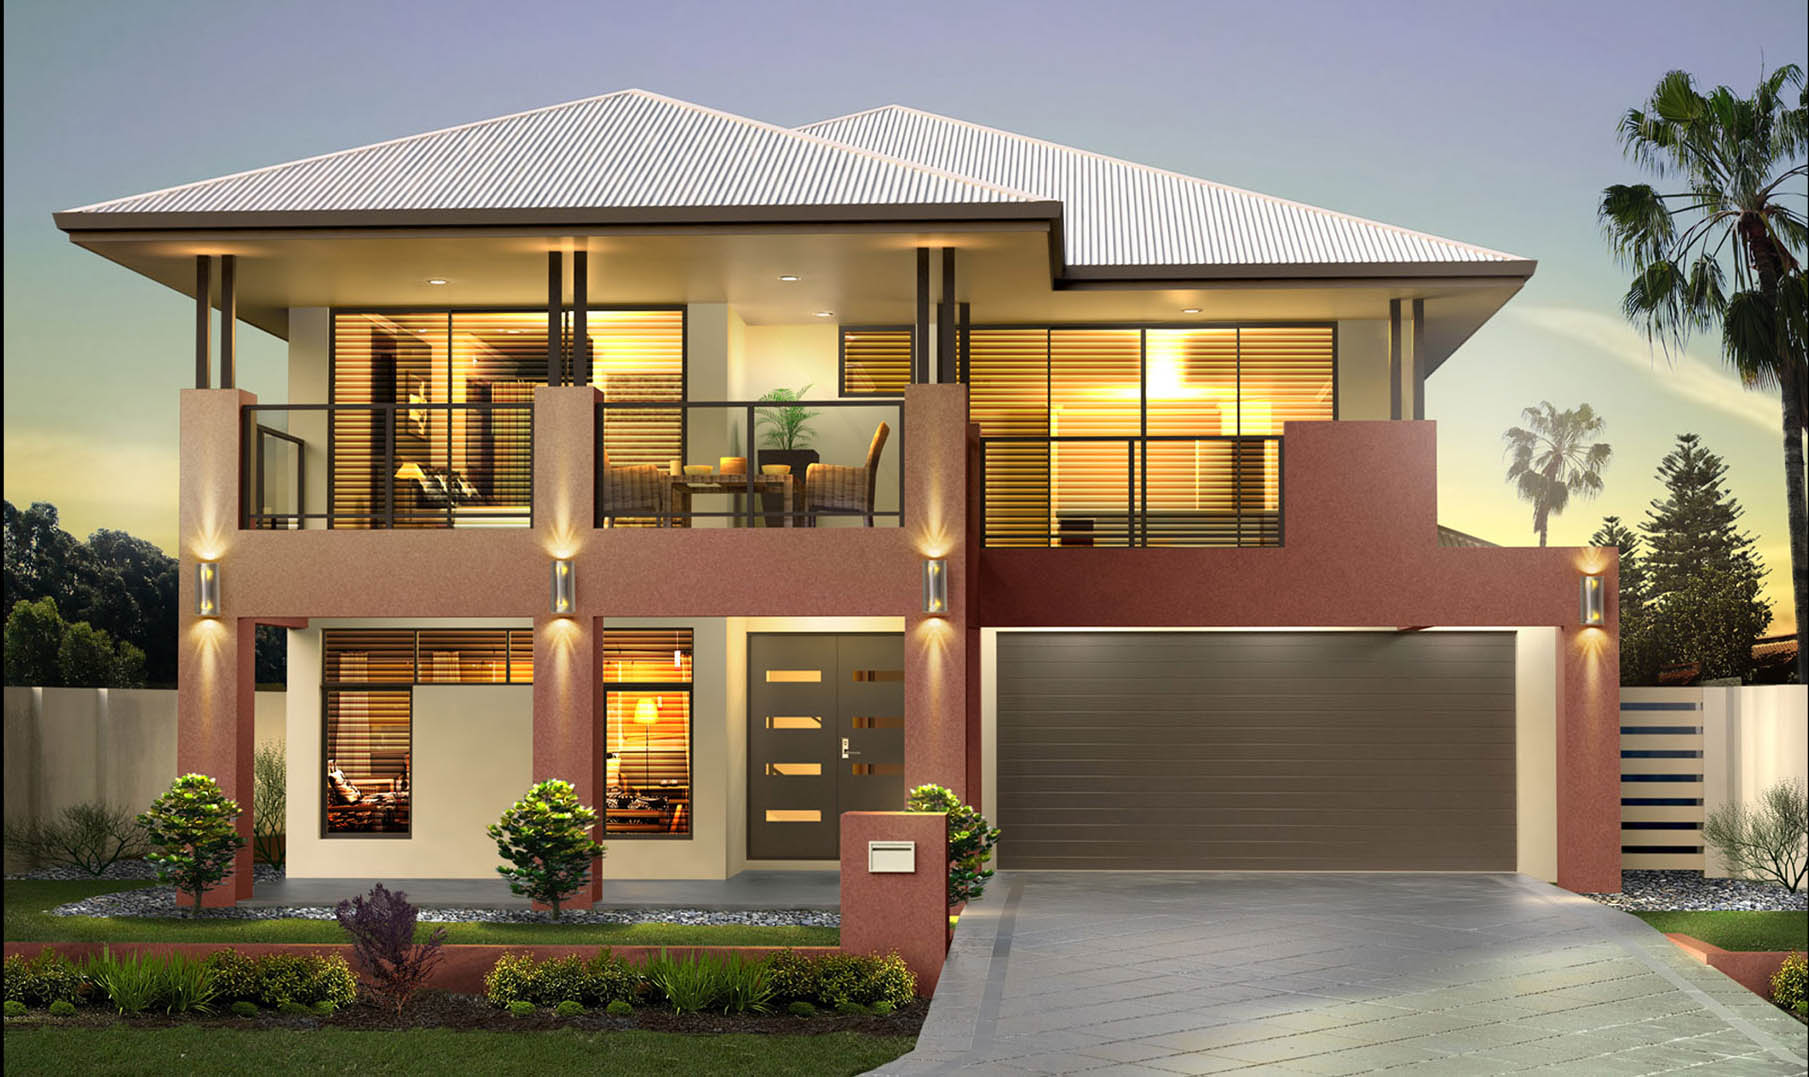 San remo series 1 upstairs living new 2 storey homes perth for Ome images